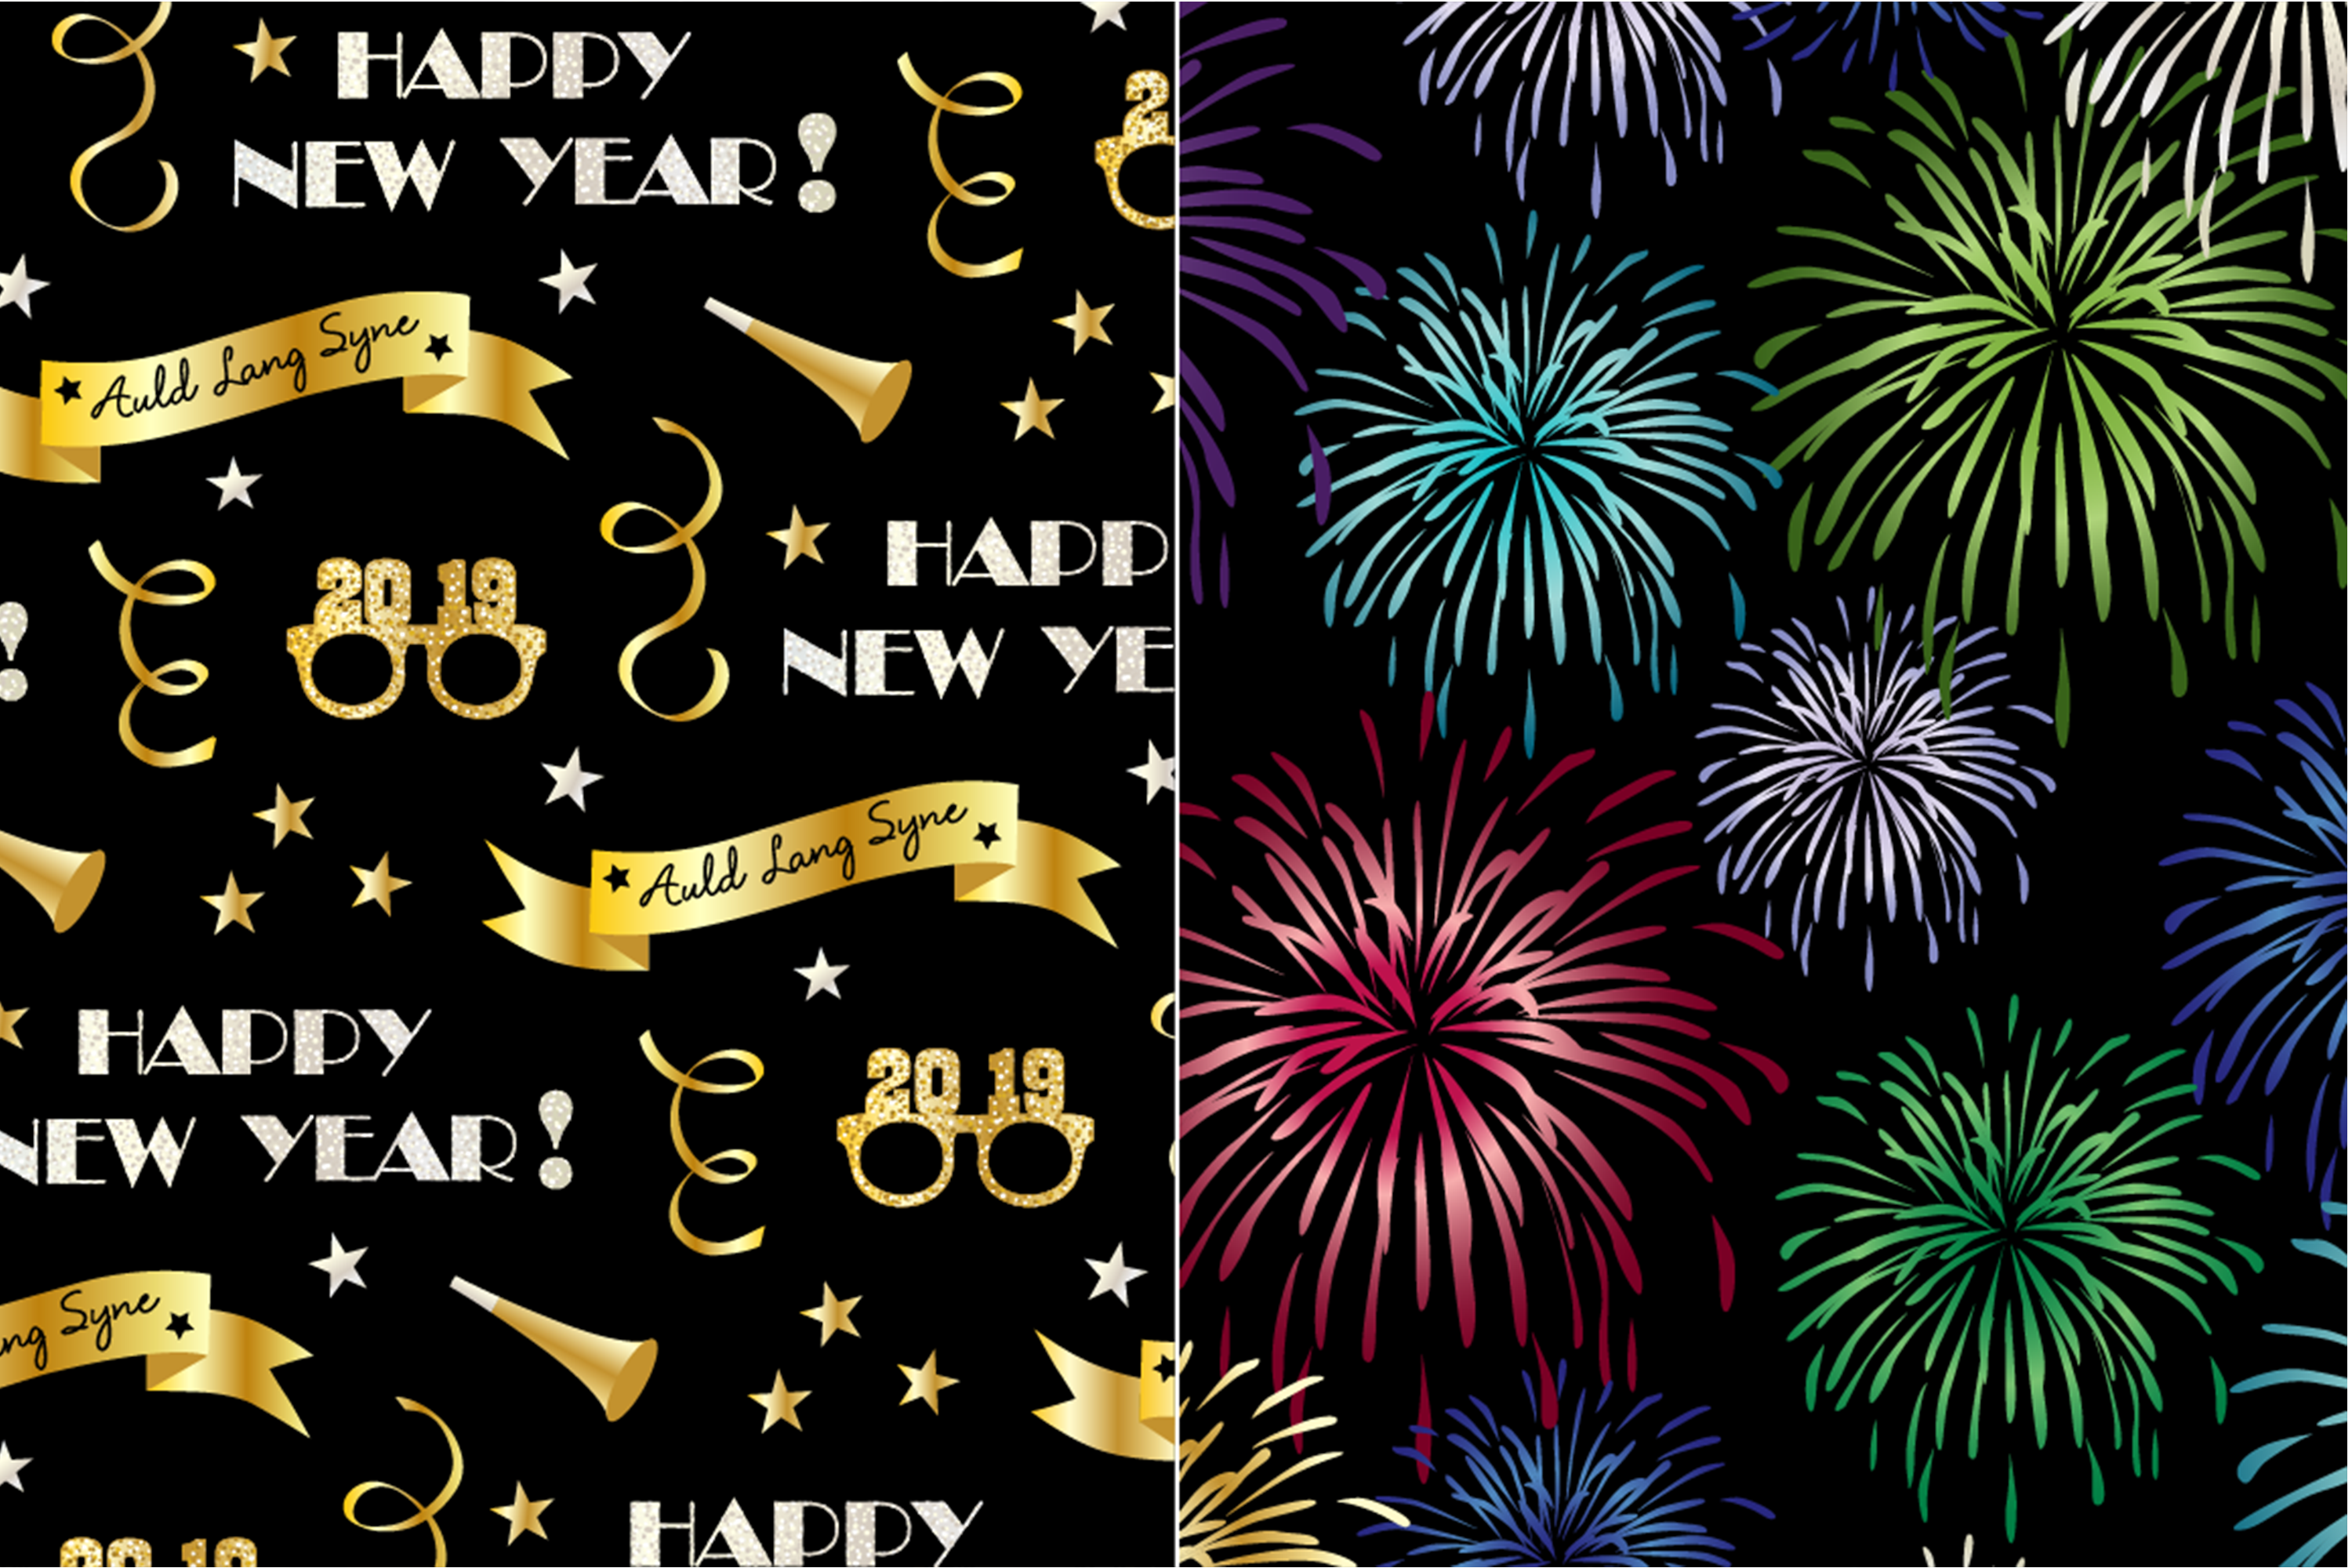 New Year's Eve Patterns example image 5